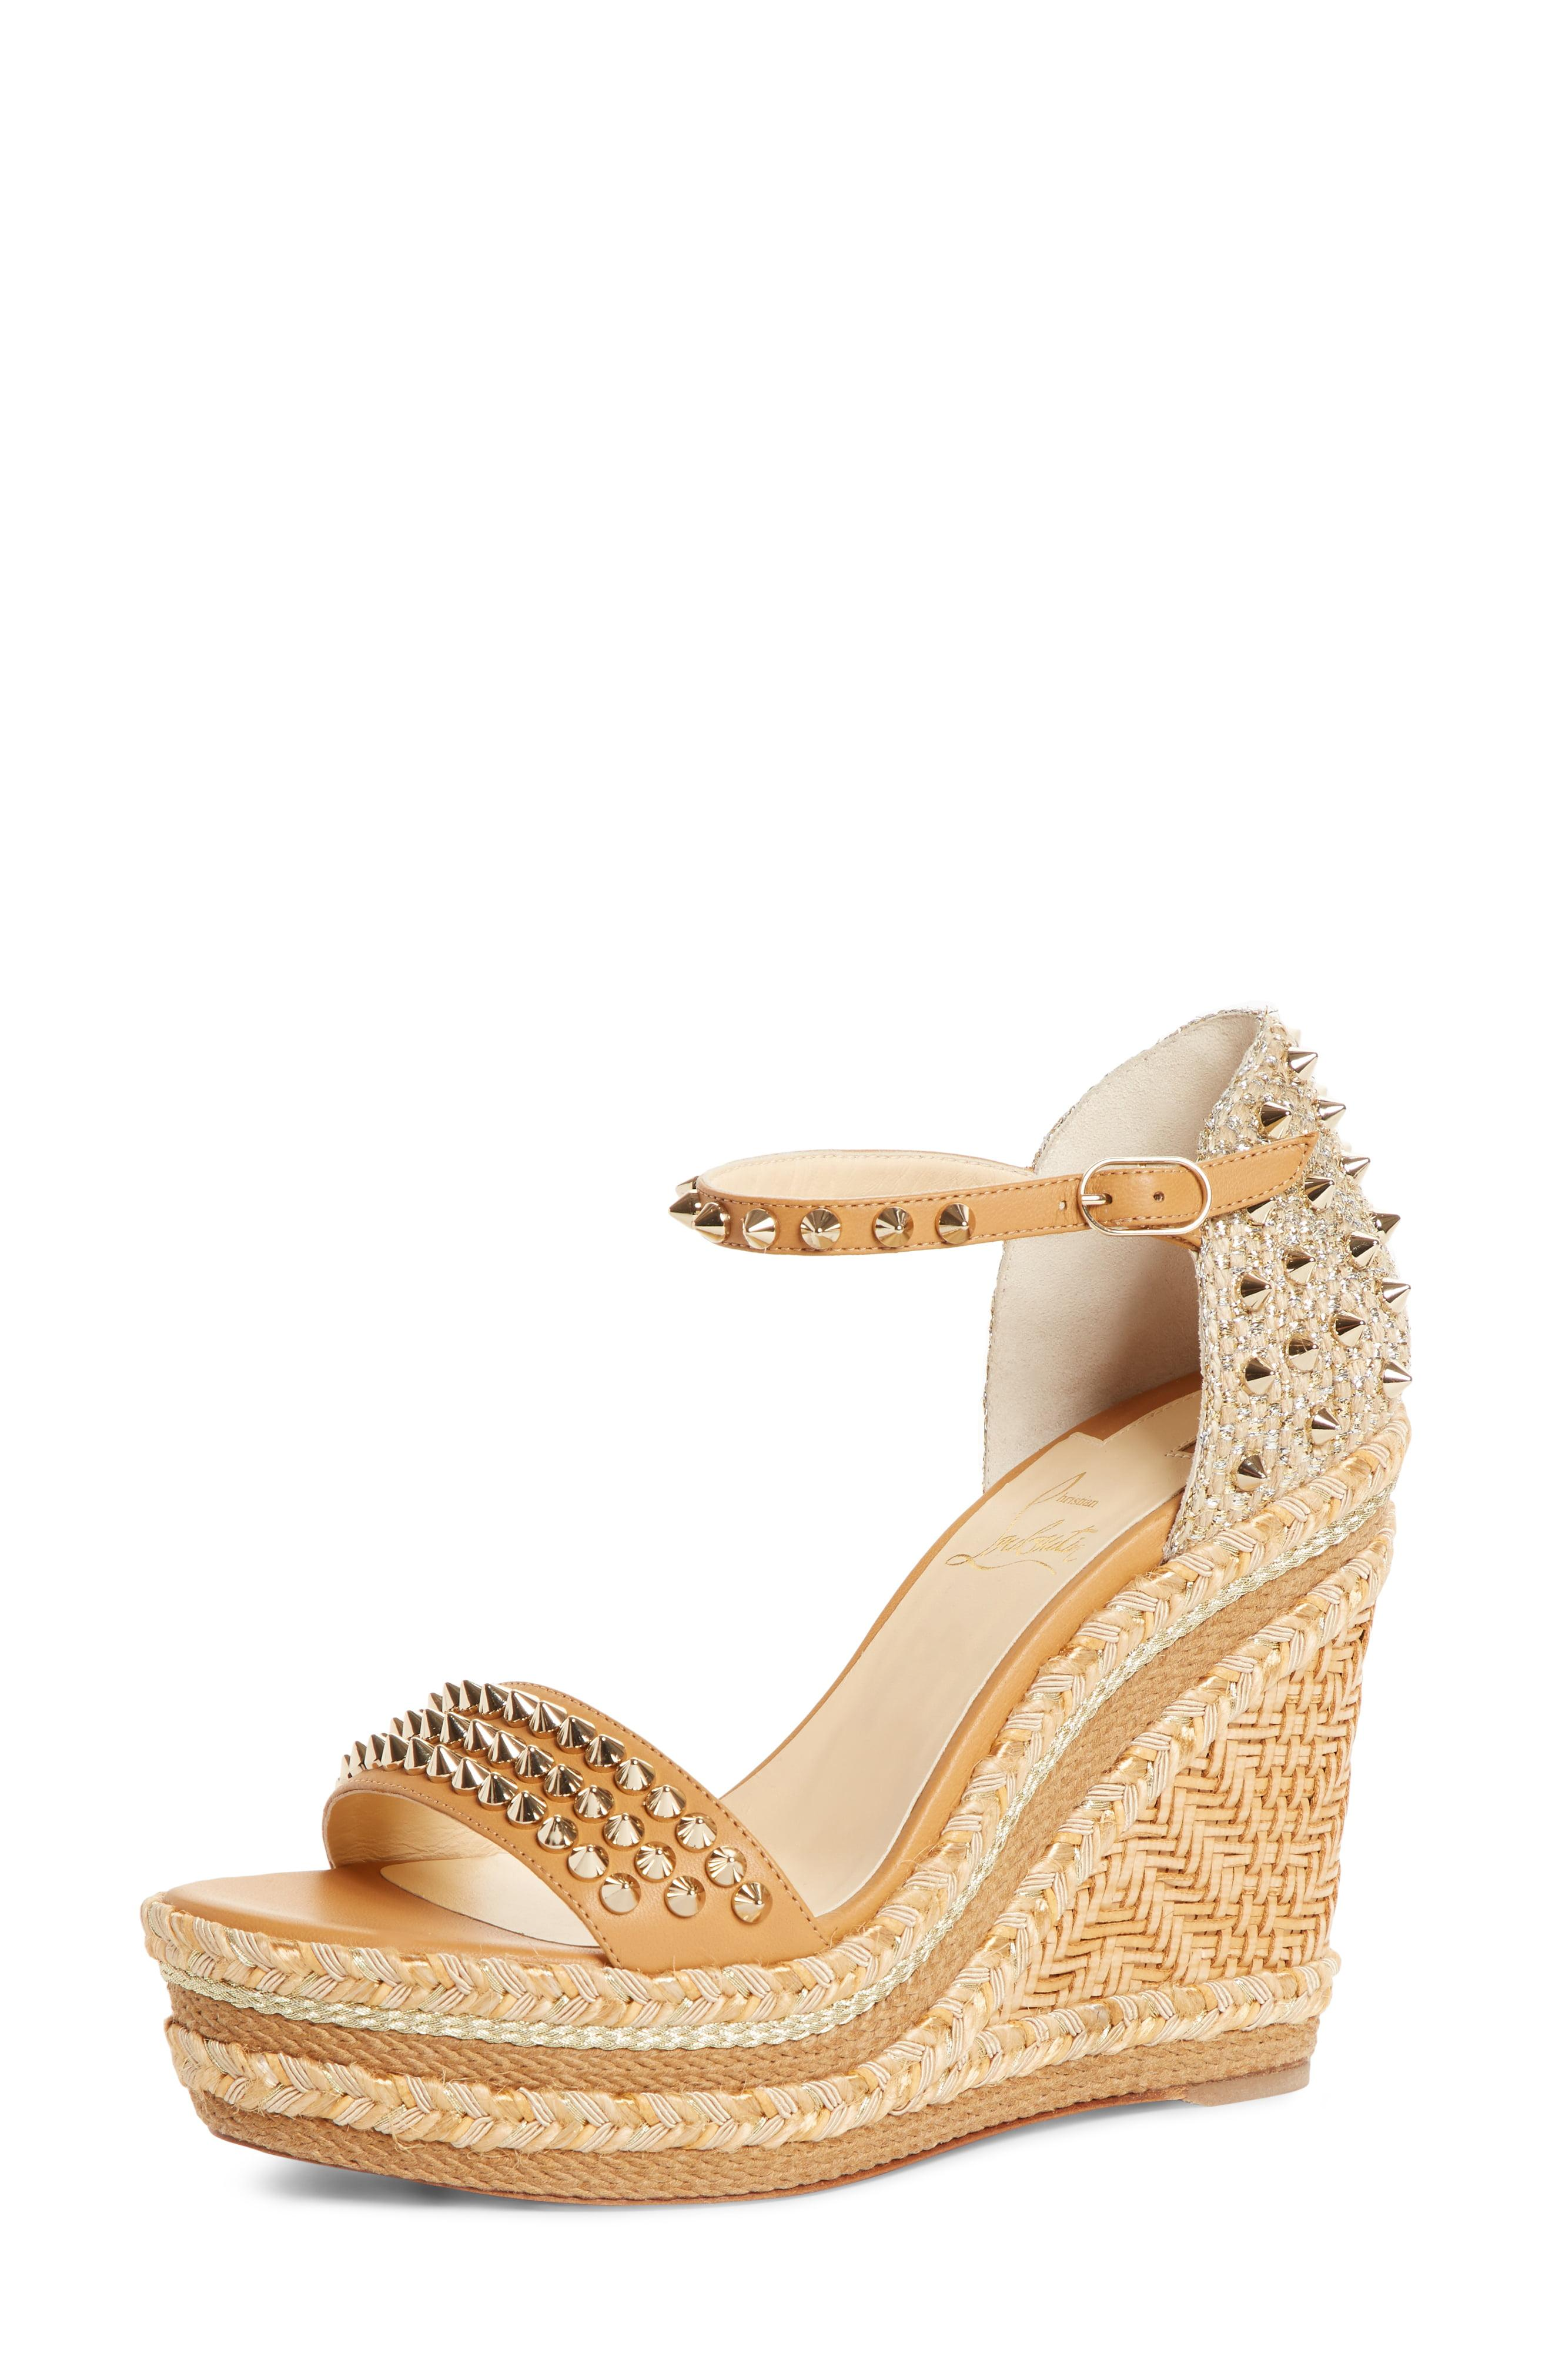 d8a141d8e3c7 Lyst - Christian Louboutin Madmonica Spike Wedge Sandal in Metallic